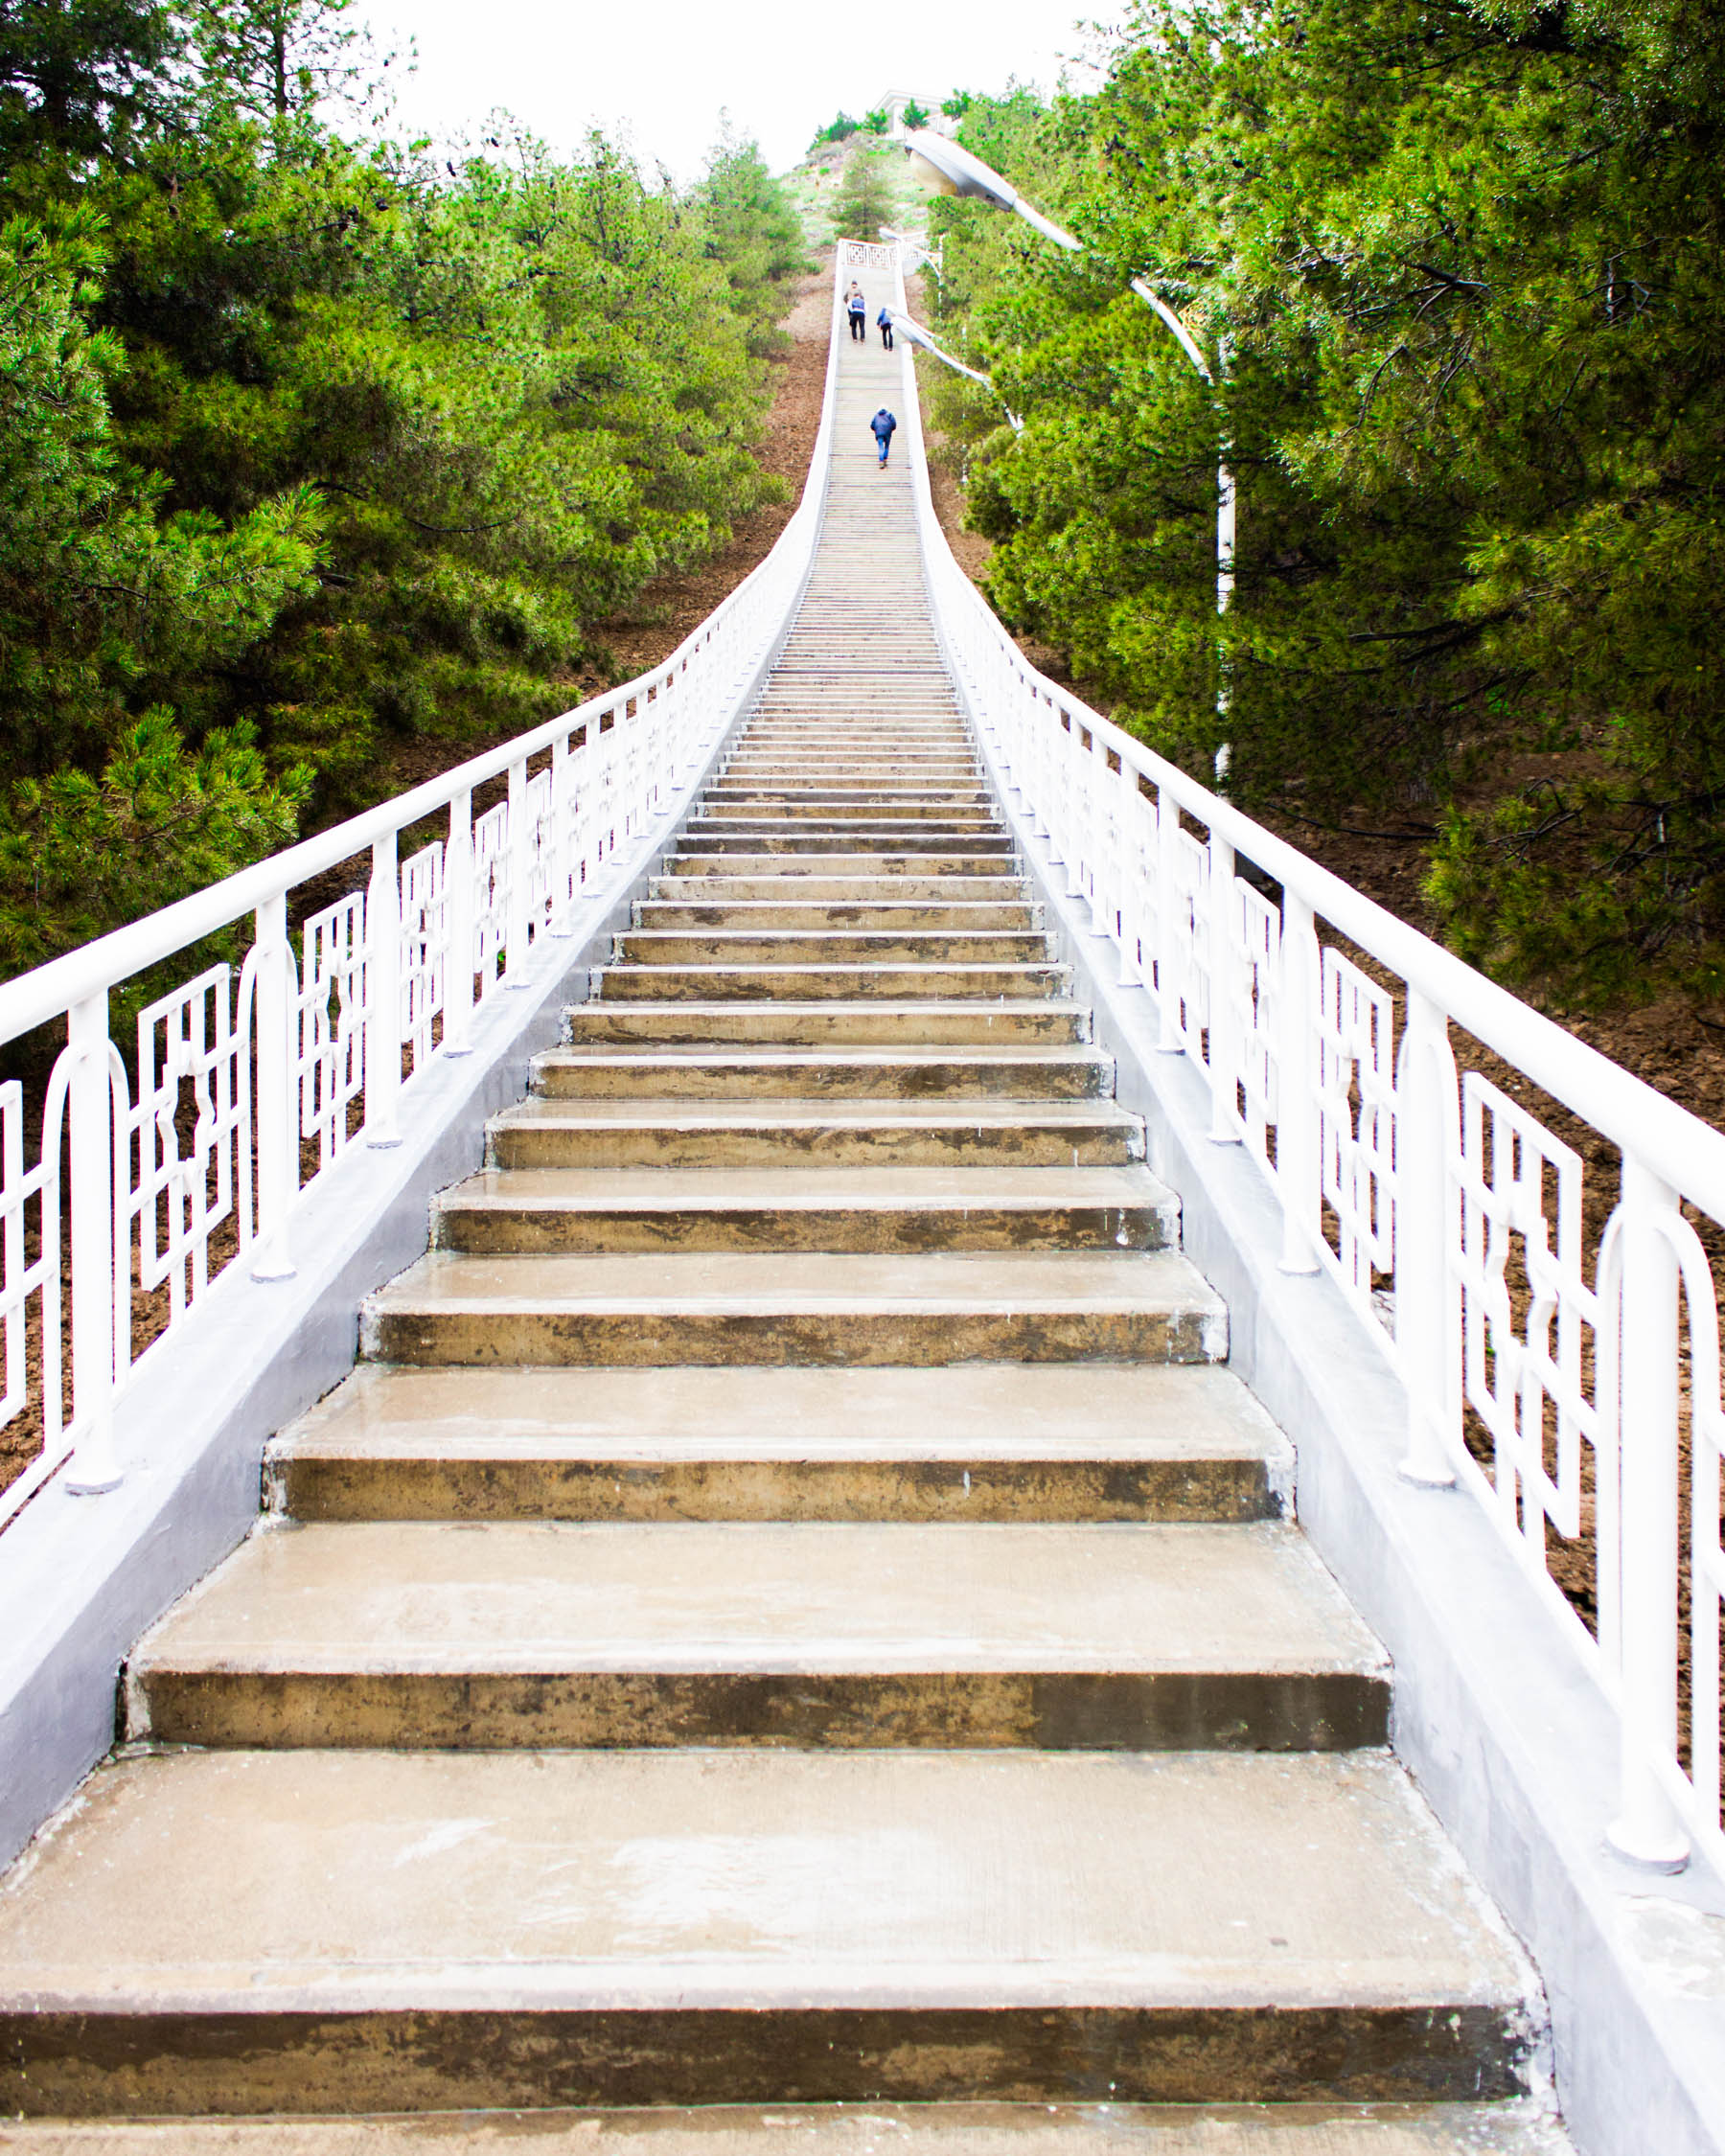 Stairs of Health